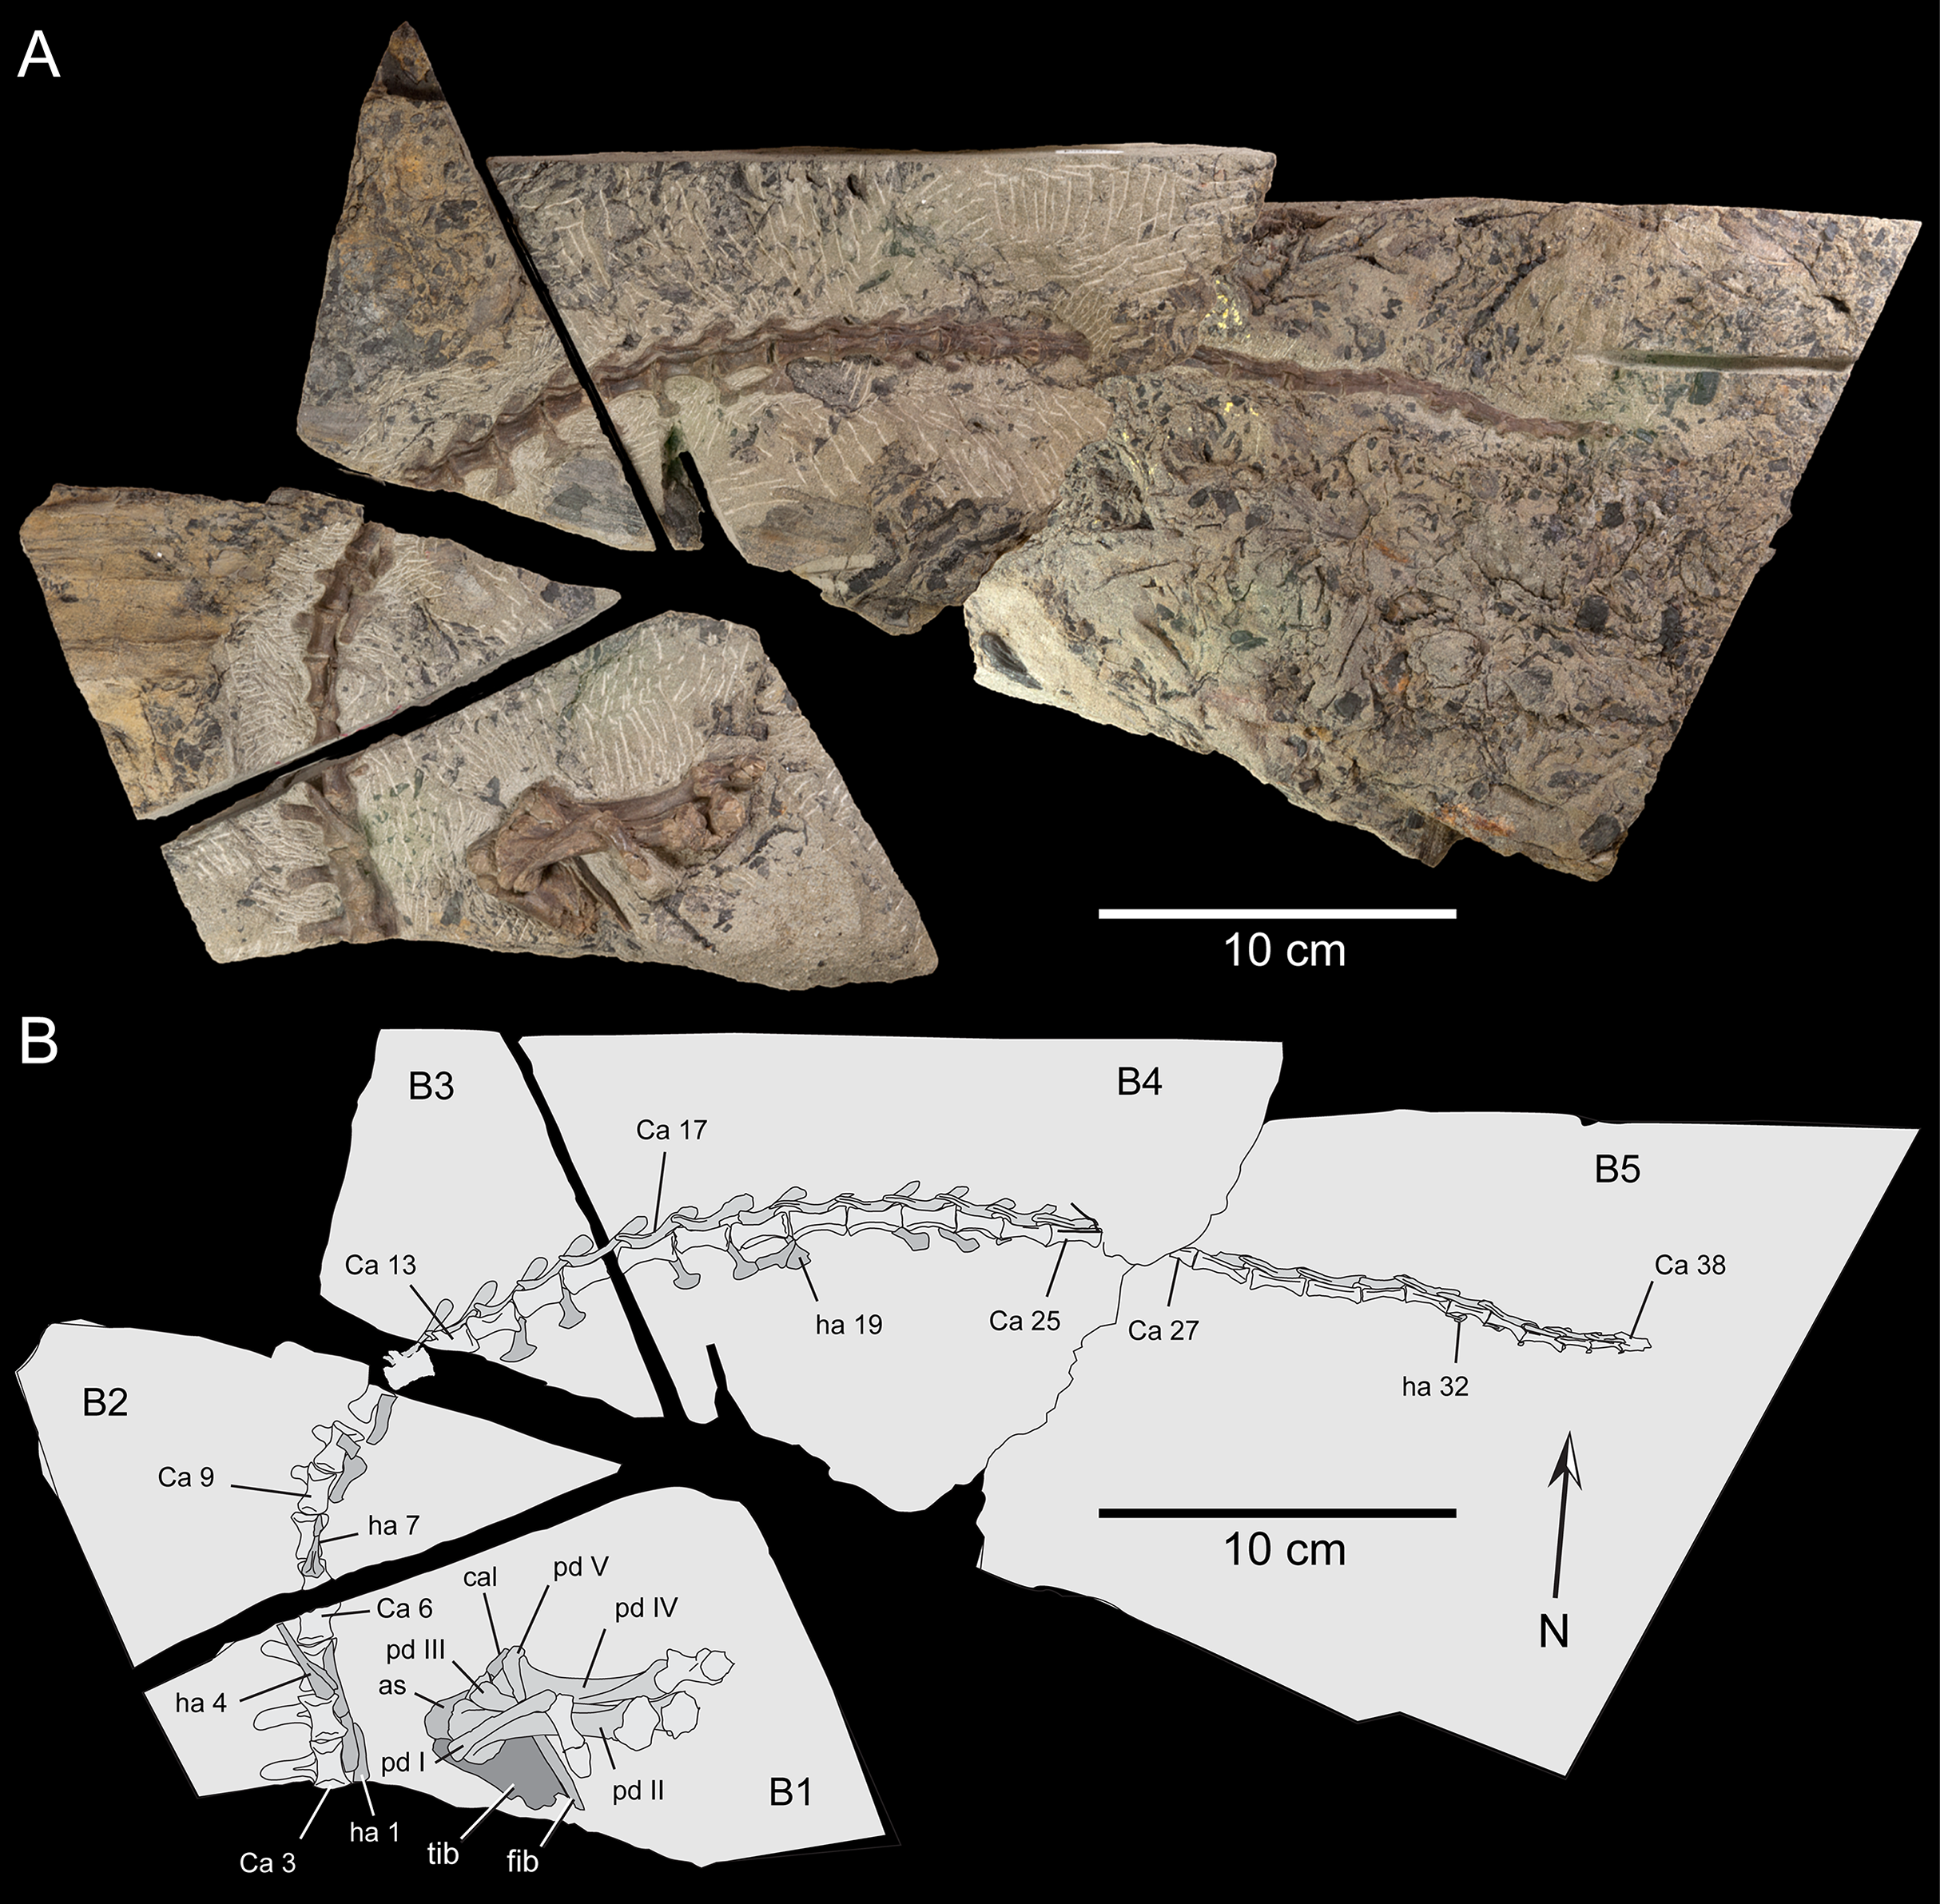 A new small-bodied ornithopod (Dinosauria, Ornithischia) from a deep